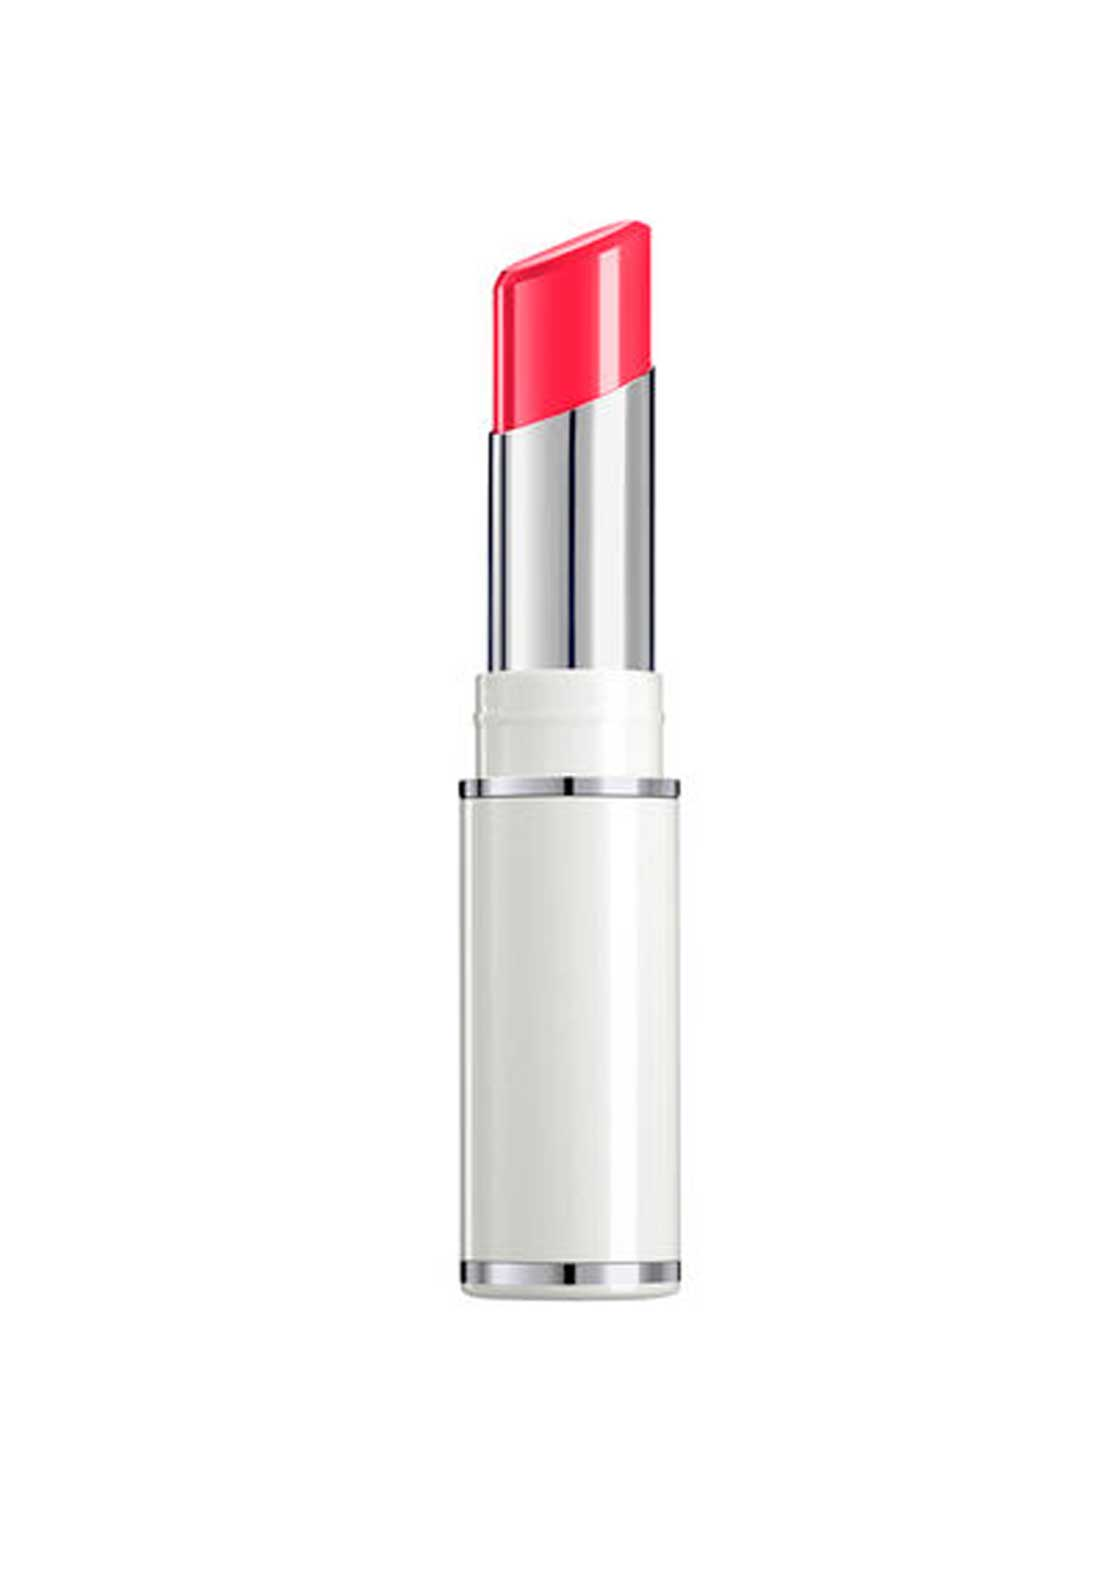 Lancome Shine Lover Vibrant Shine Lipstick, 340 French Sourire